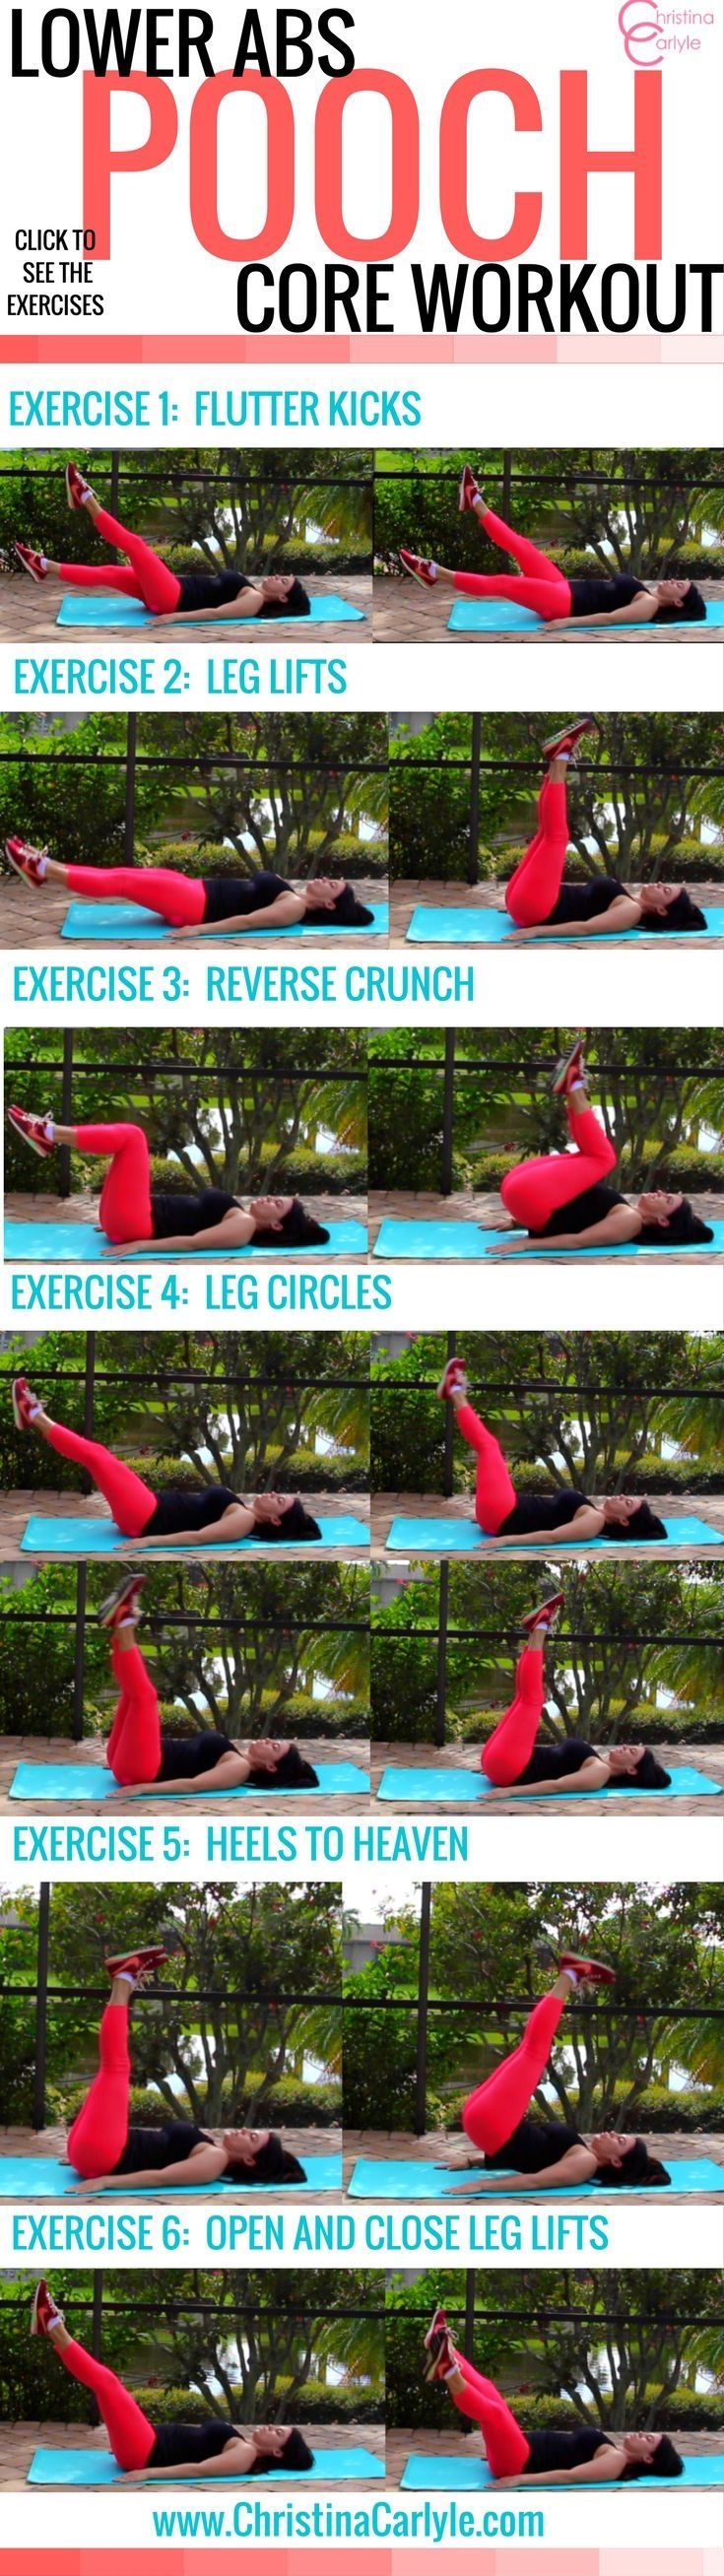 Learn how to exercise your lower abs and get a Lower Ab Workout for women from Trainer Christina Carlyle.